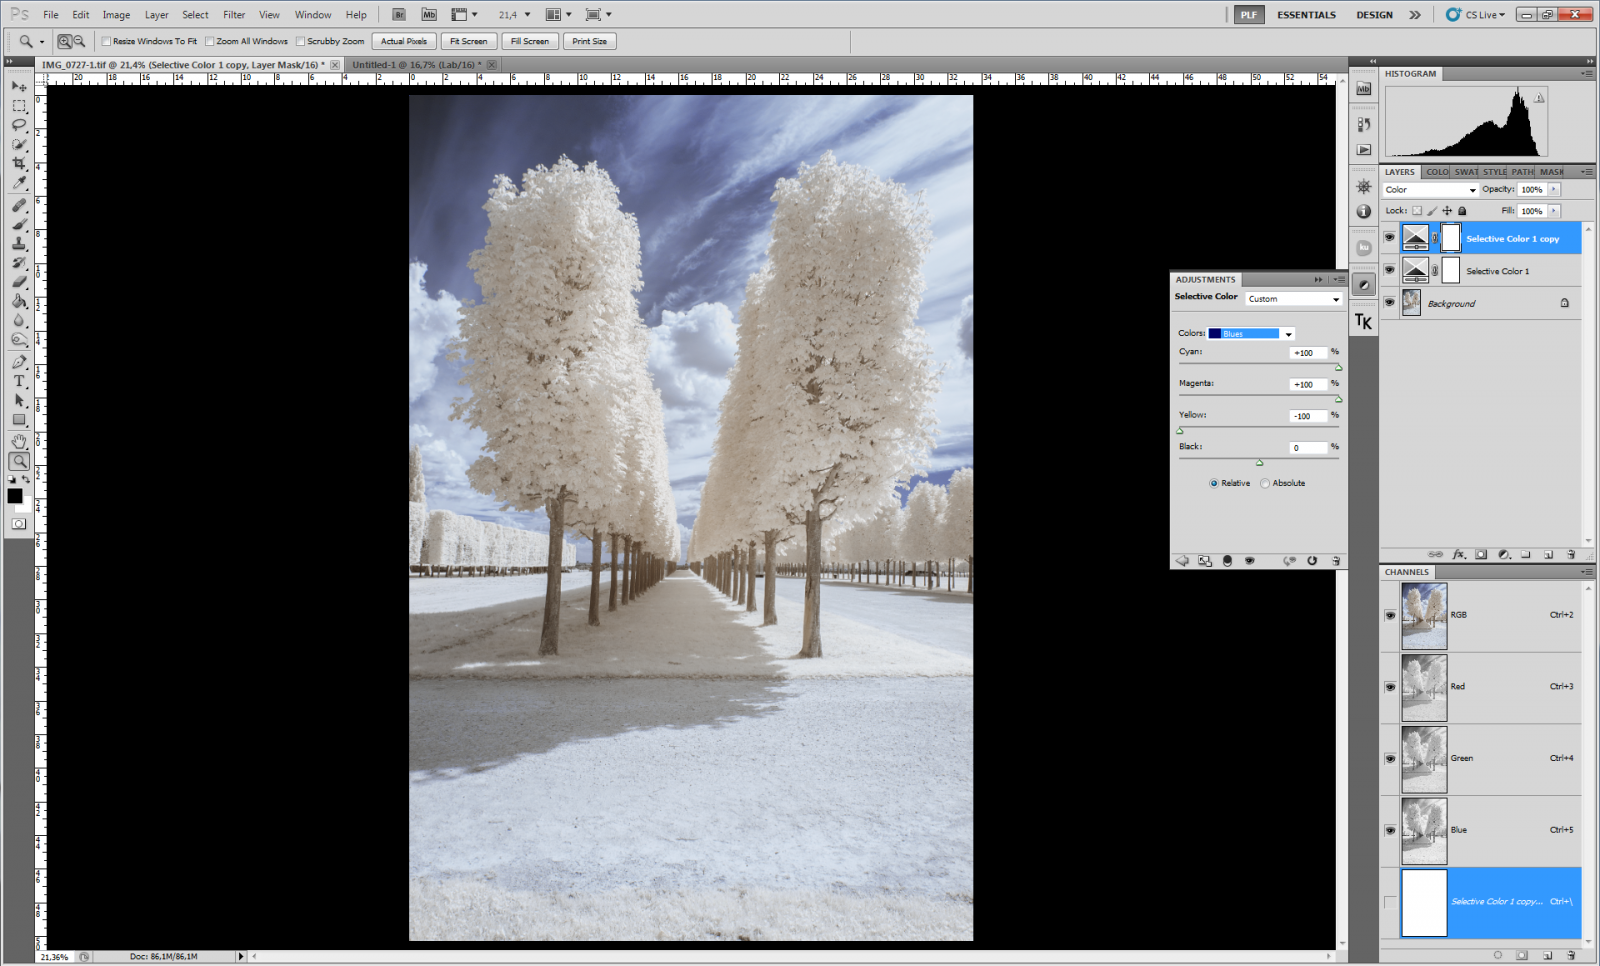 IR tuto 4 | Pierre-Louis Ferrer | Photographie infrarouge